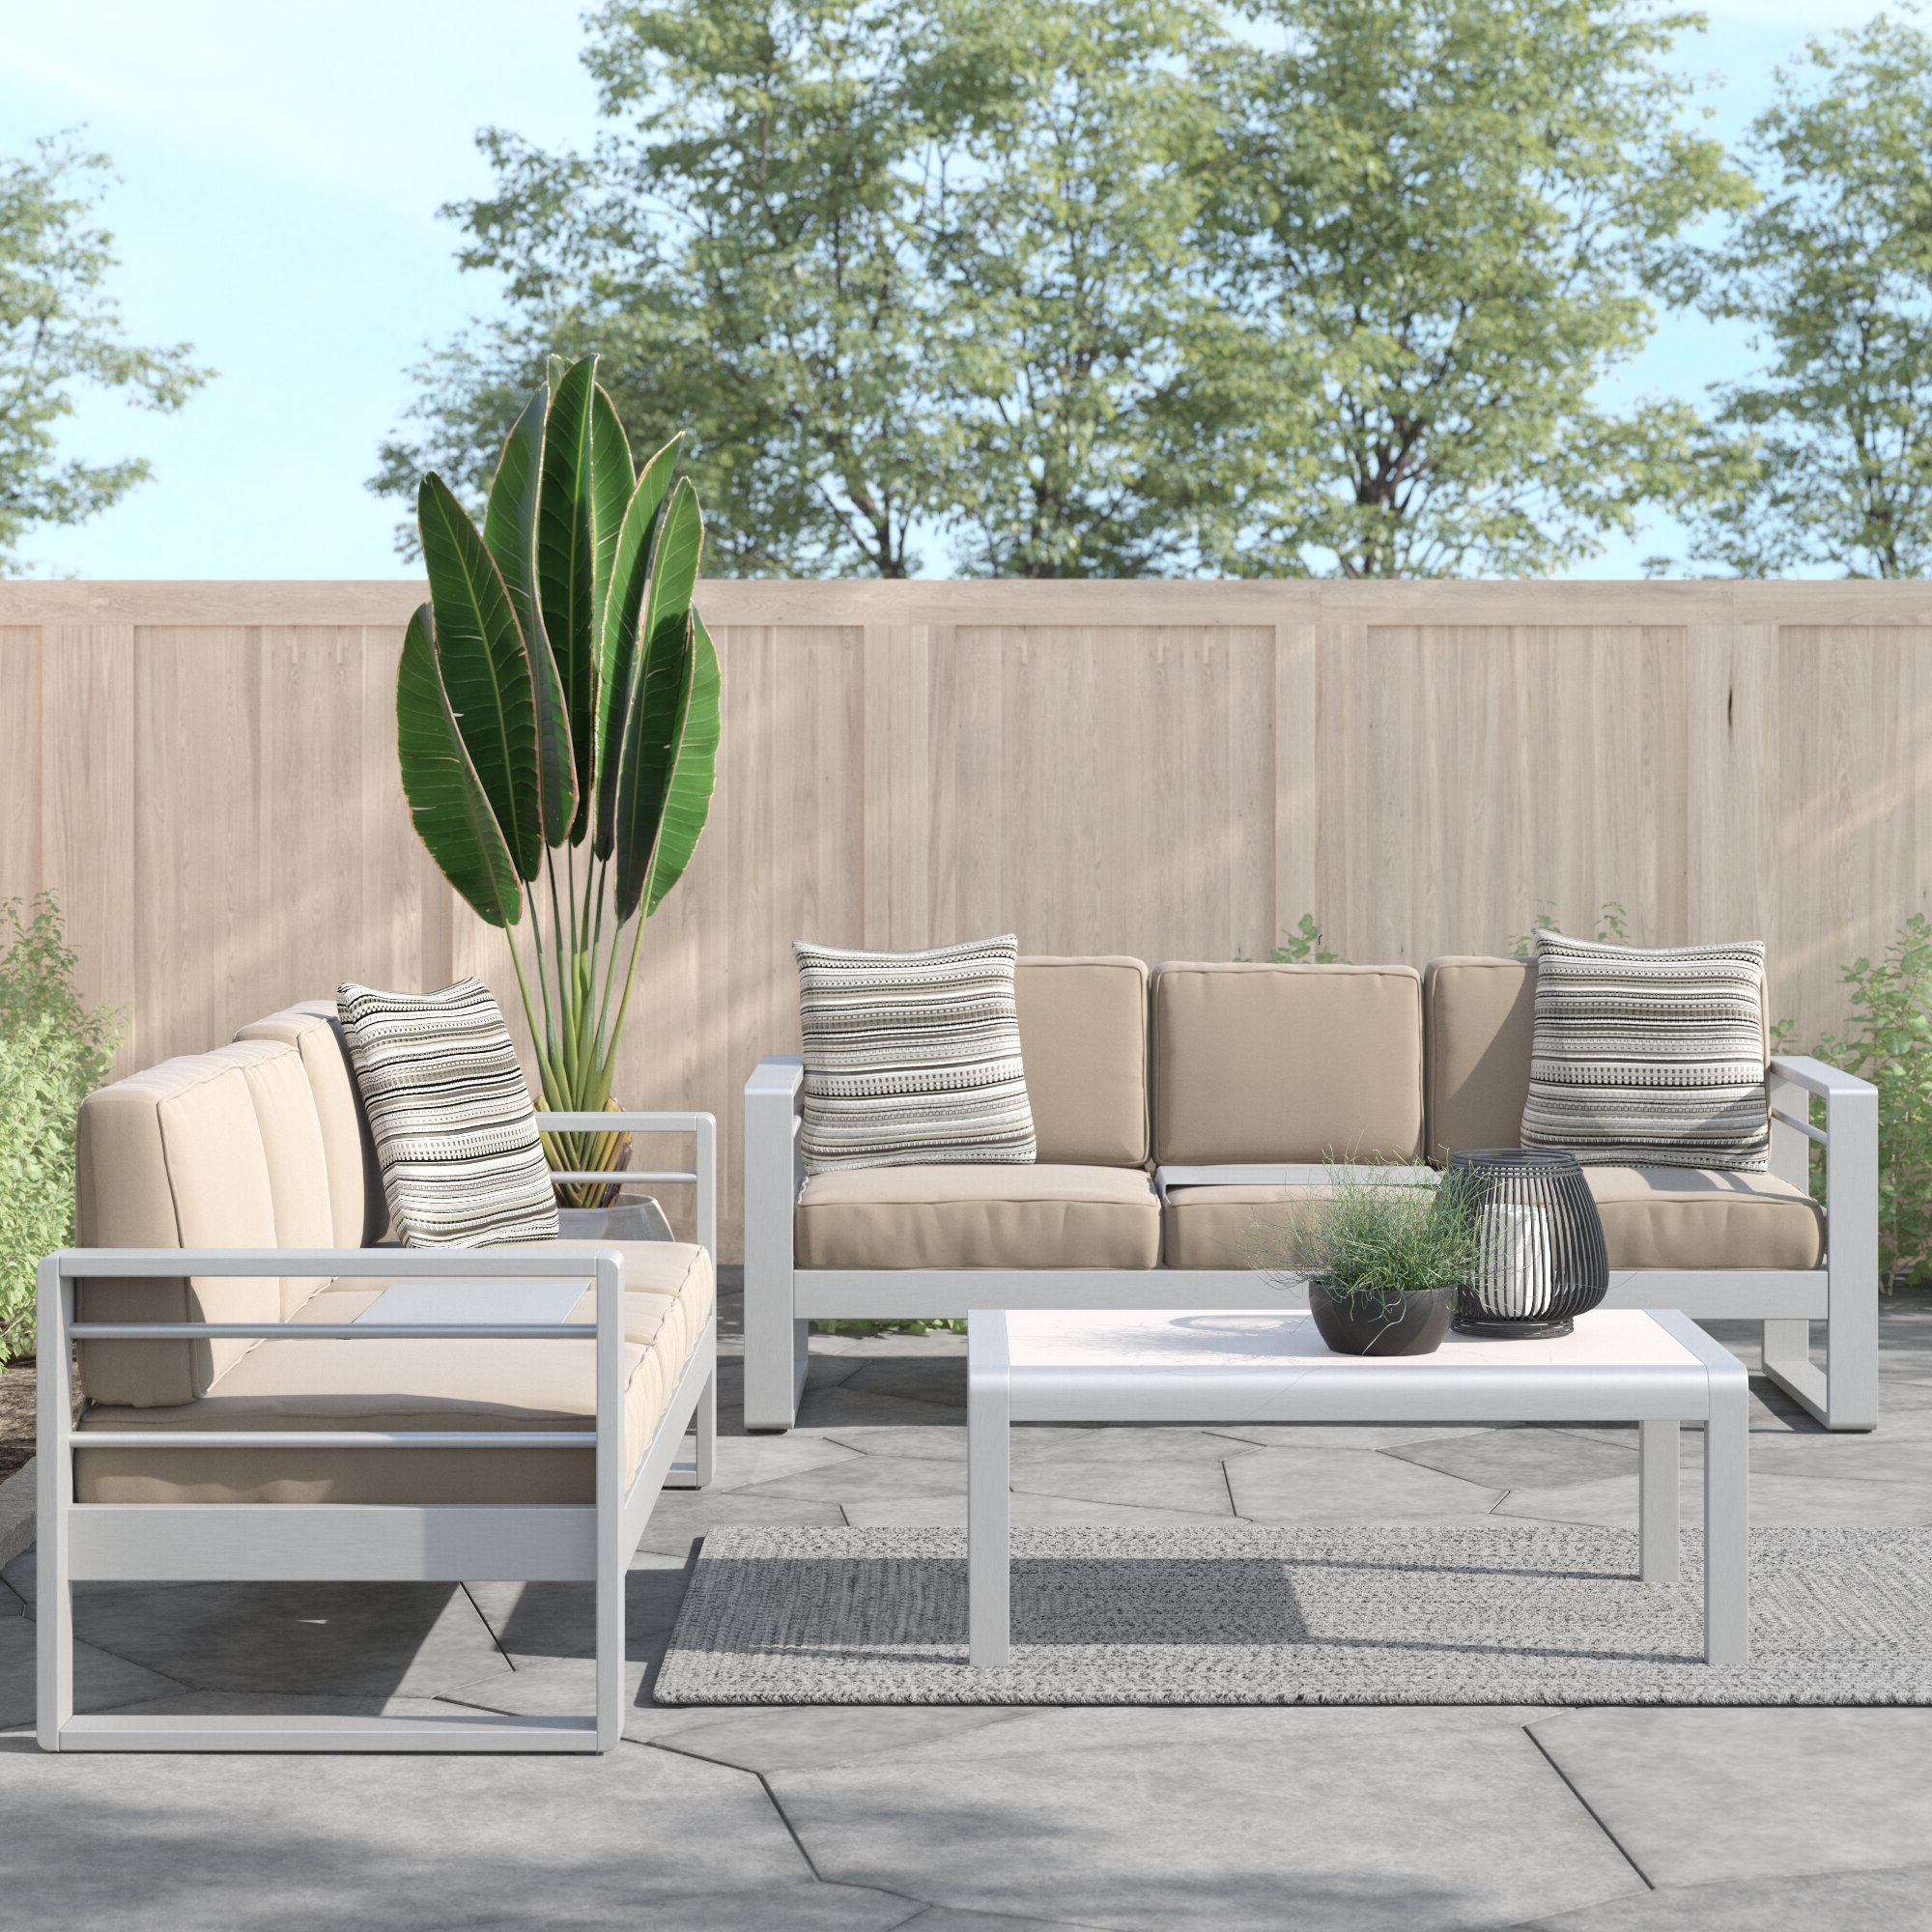 Most Recently Released Royalston 3 Piece Sofa Set Inside Royalston Patio Sofas With Cushions (View 11 of 20)